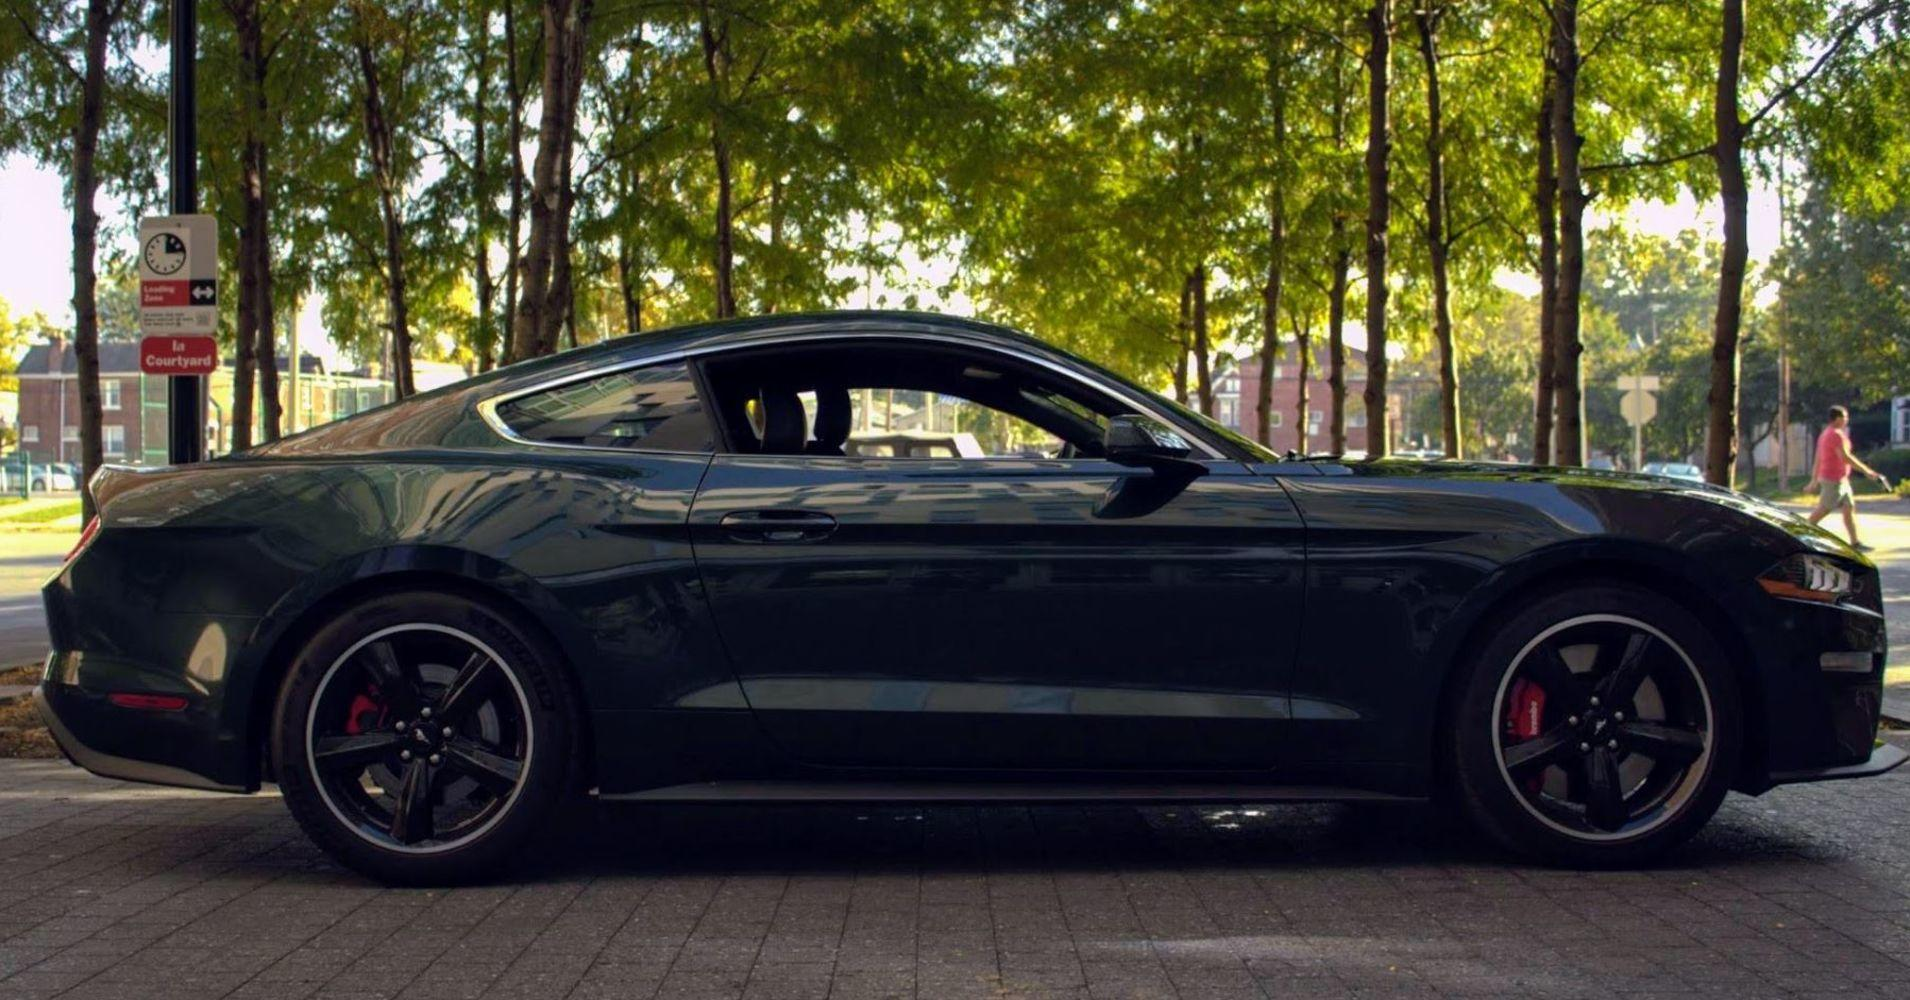 The 2019 Mustang Bullitt Is The Coolest Way To Spend 50 000